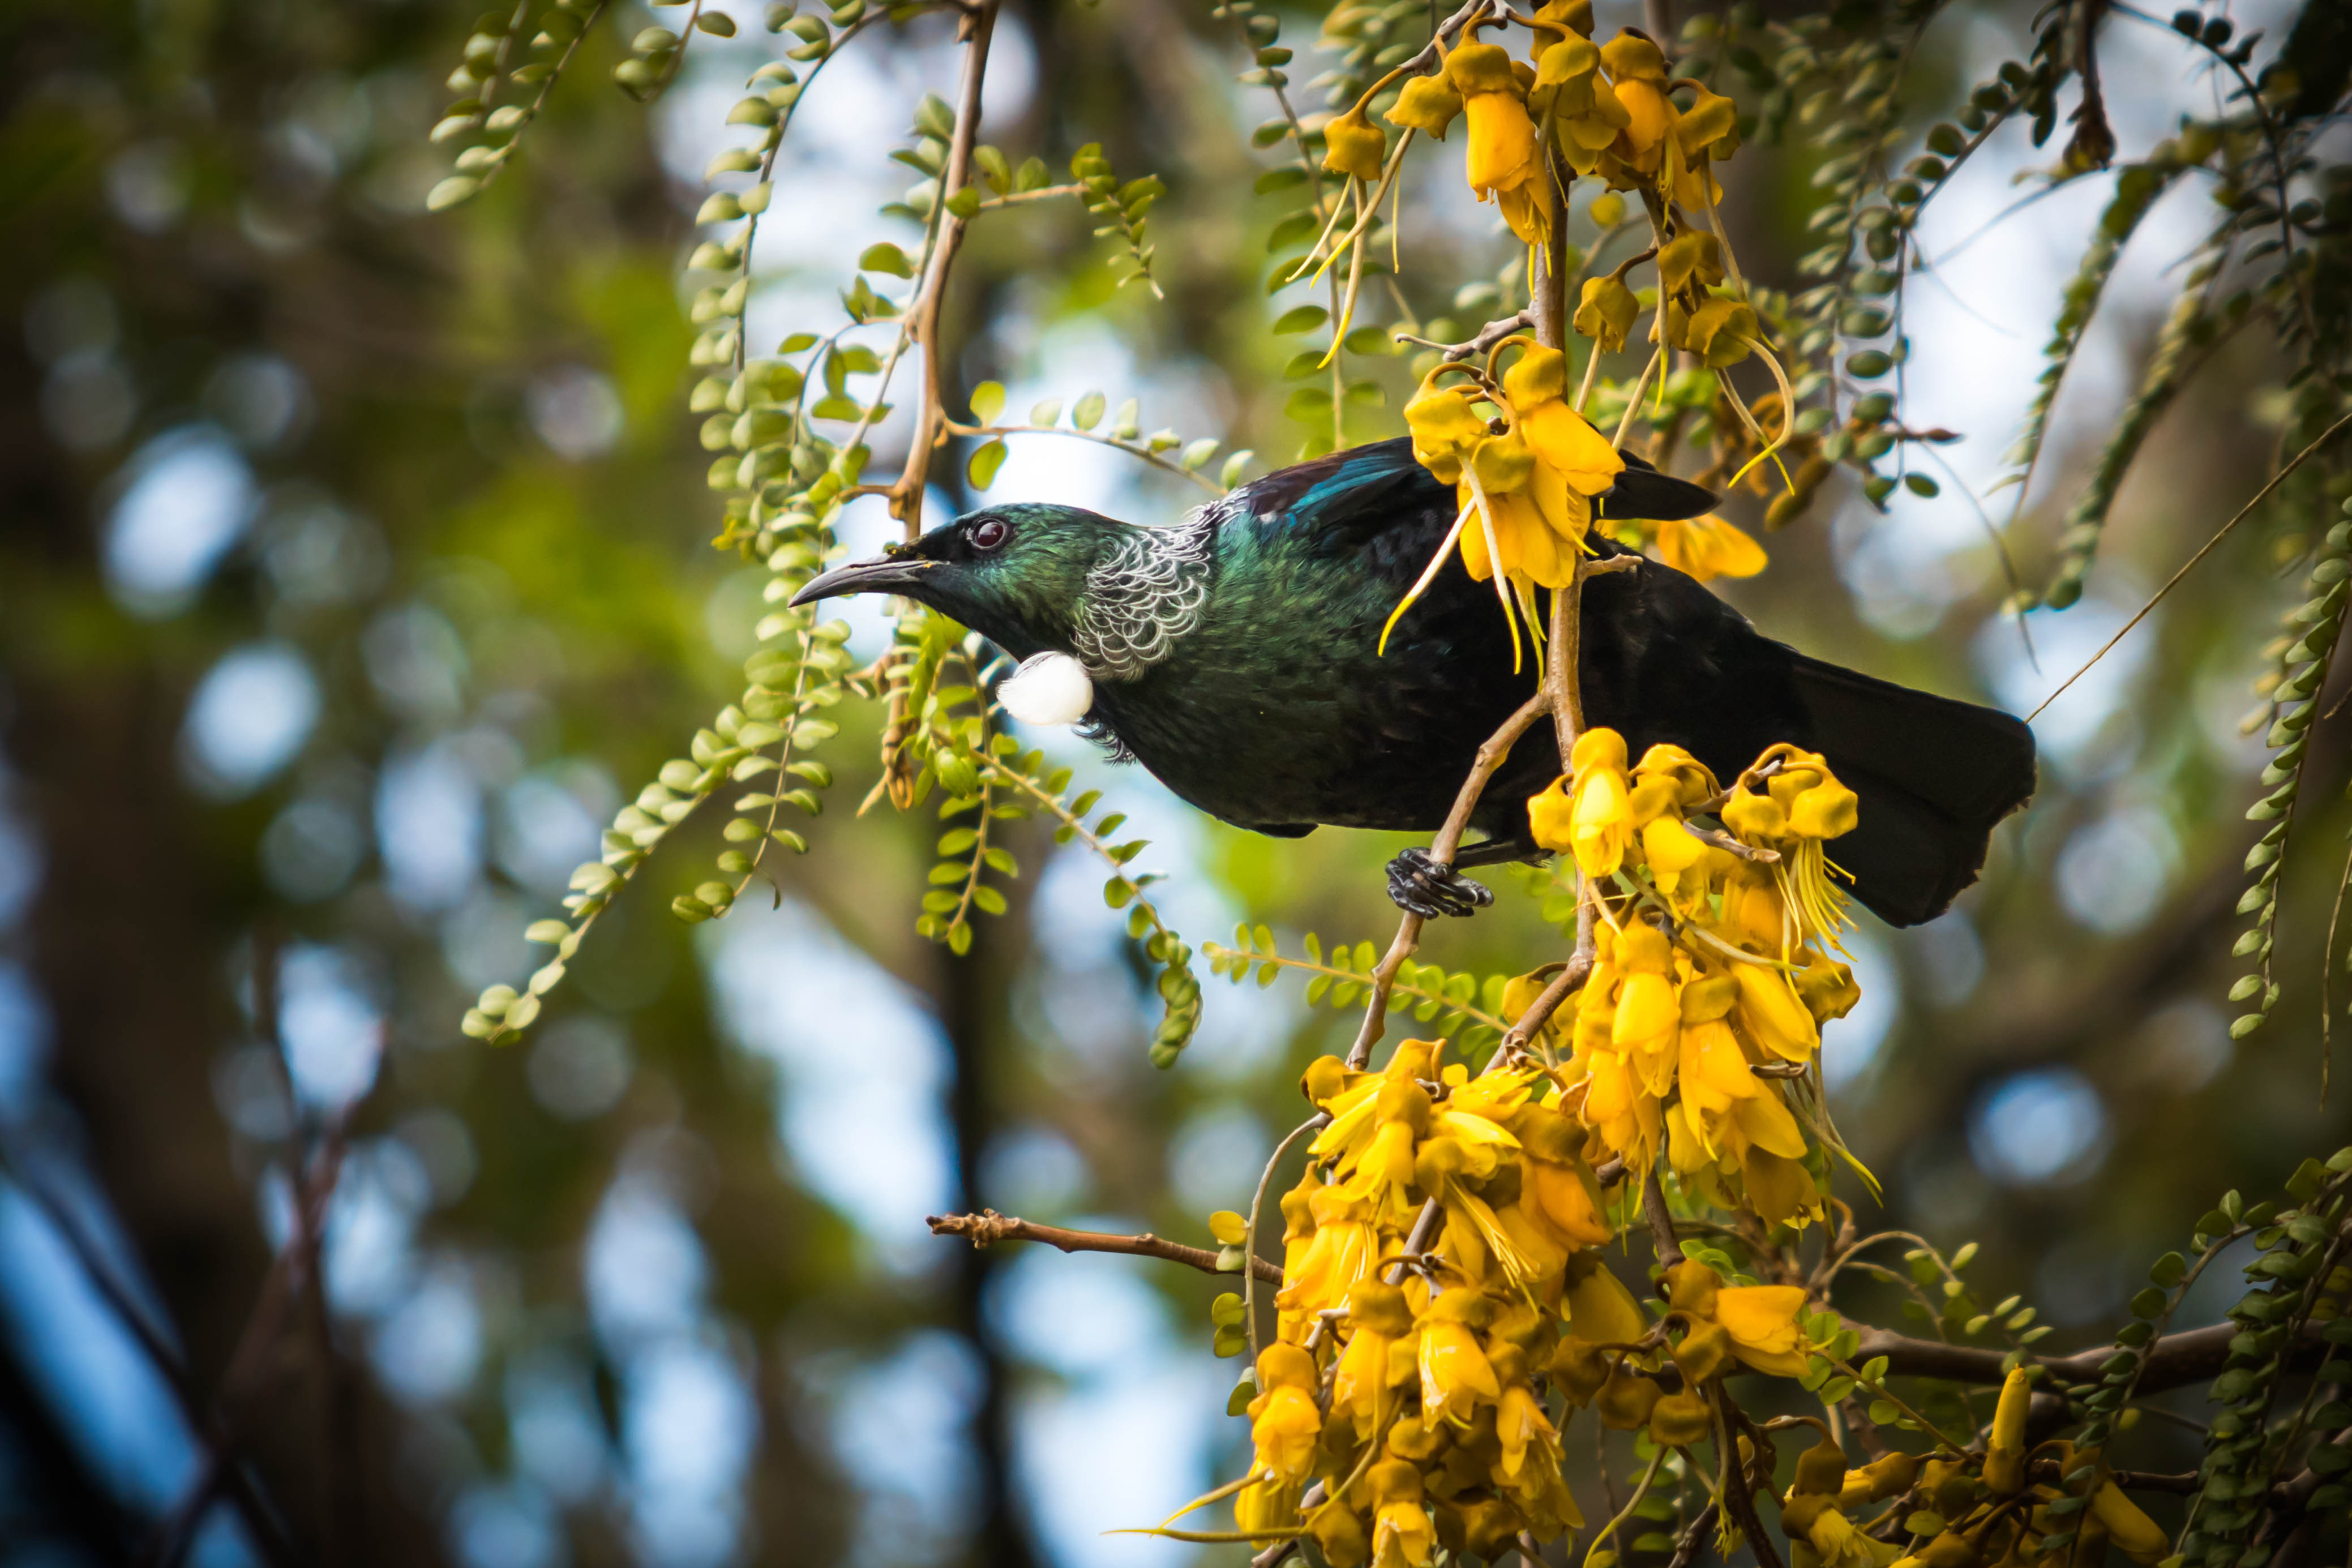 A Tui resting in a Kowhai tree